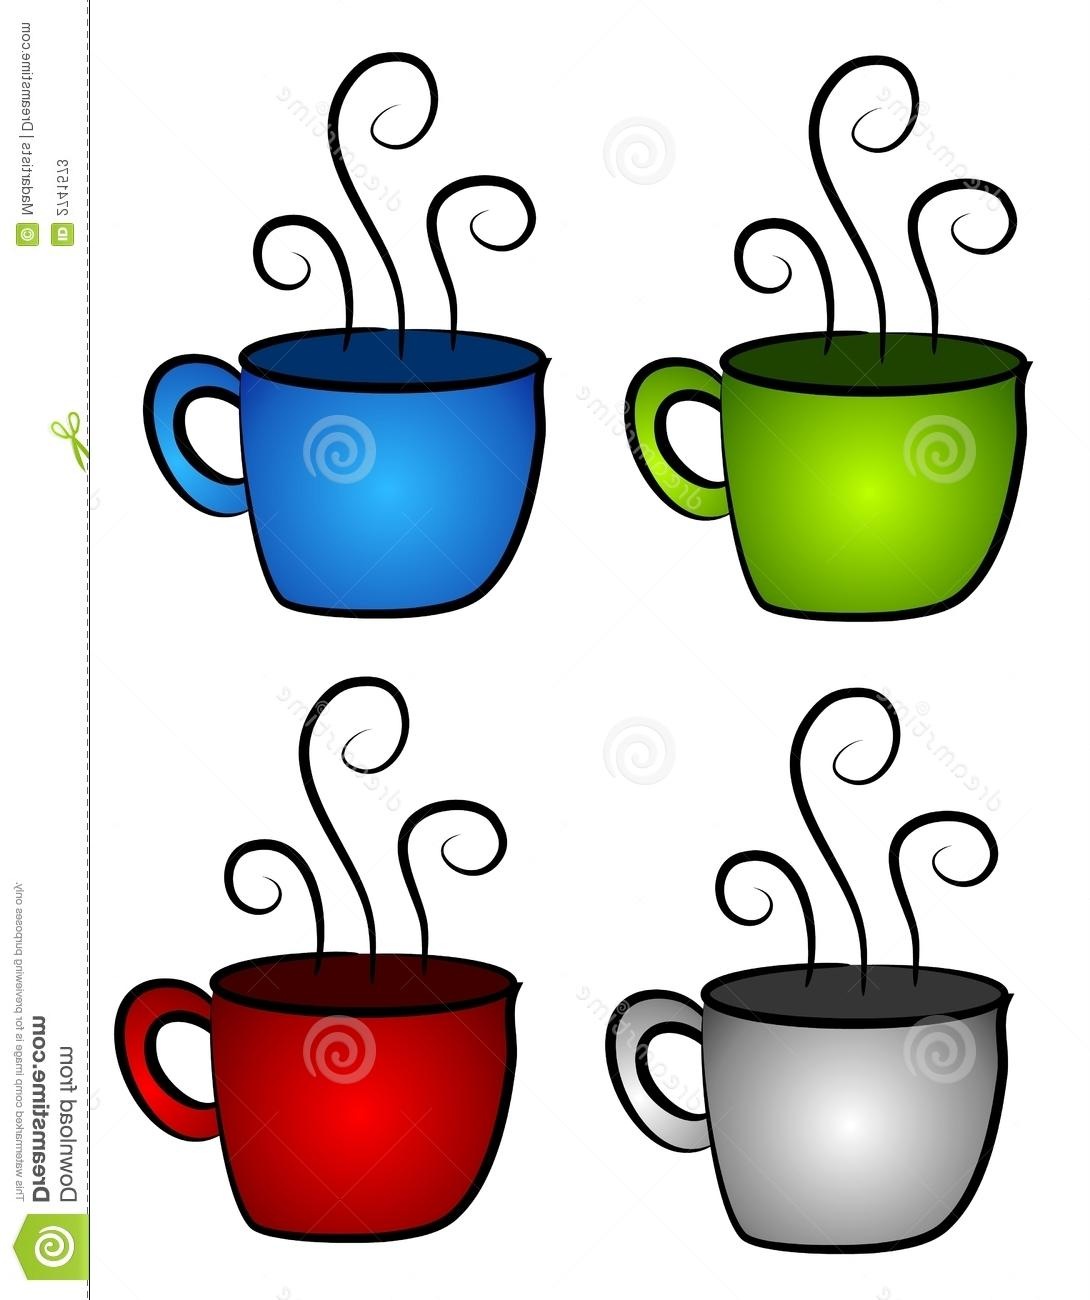 Tea cup with steam clipart picture library library Steam Clipart | Free download best Steam Clipart on ... picture library library